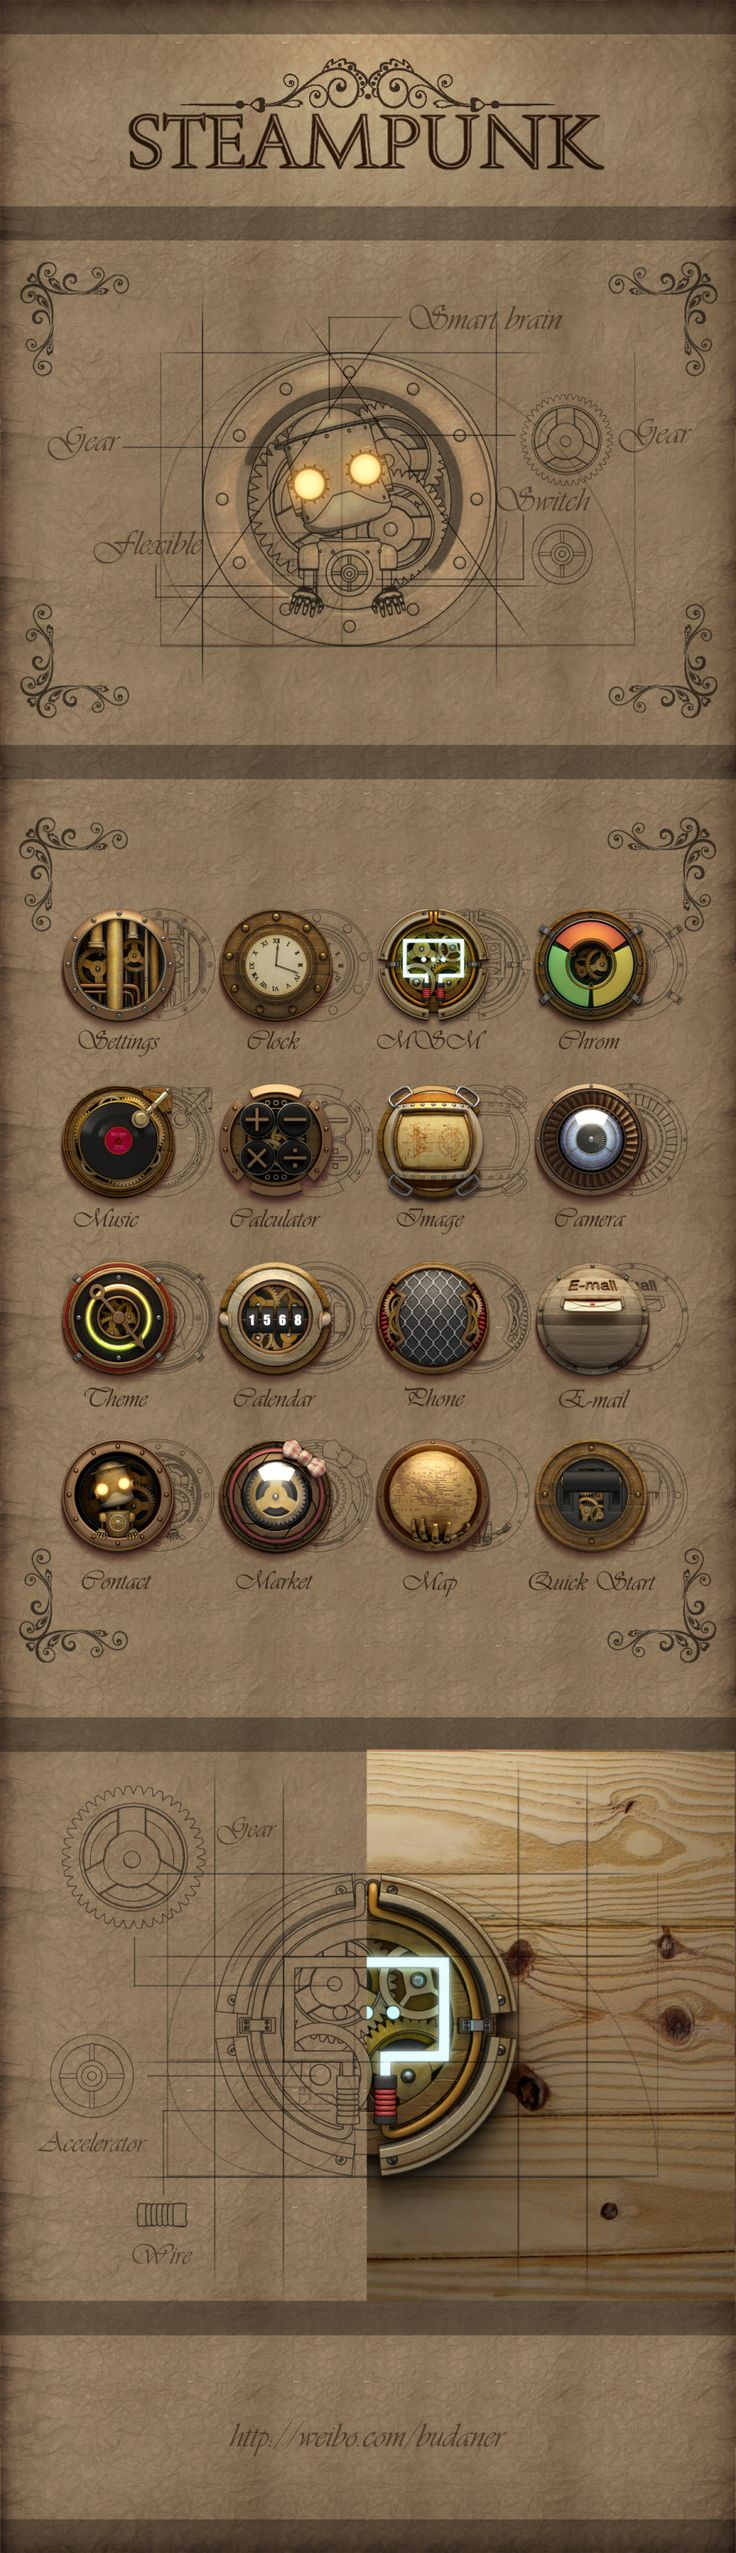 Steampunk ikon set for iPhone by aiki007, via zcool *** #icon #gui #steampunk